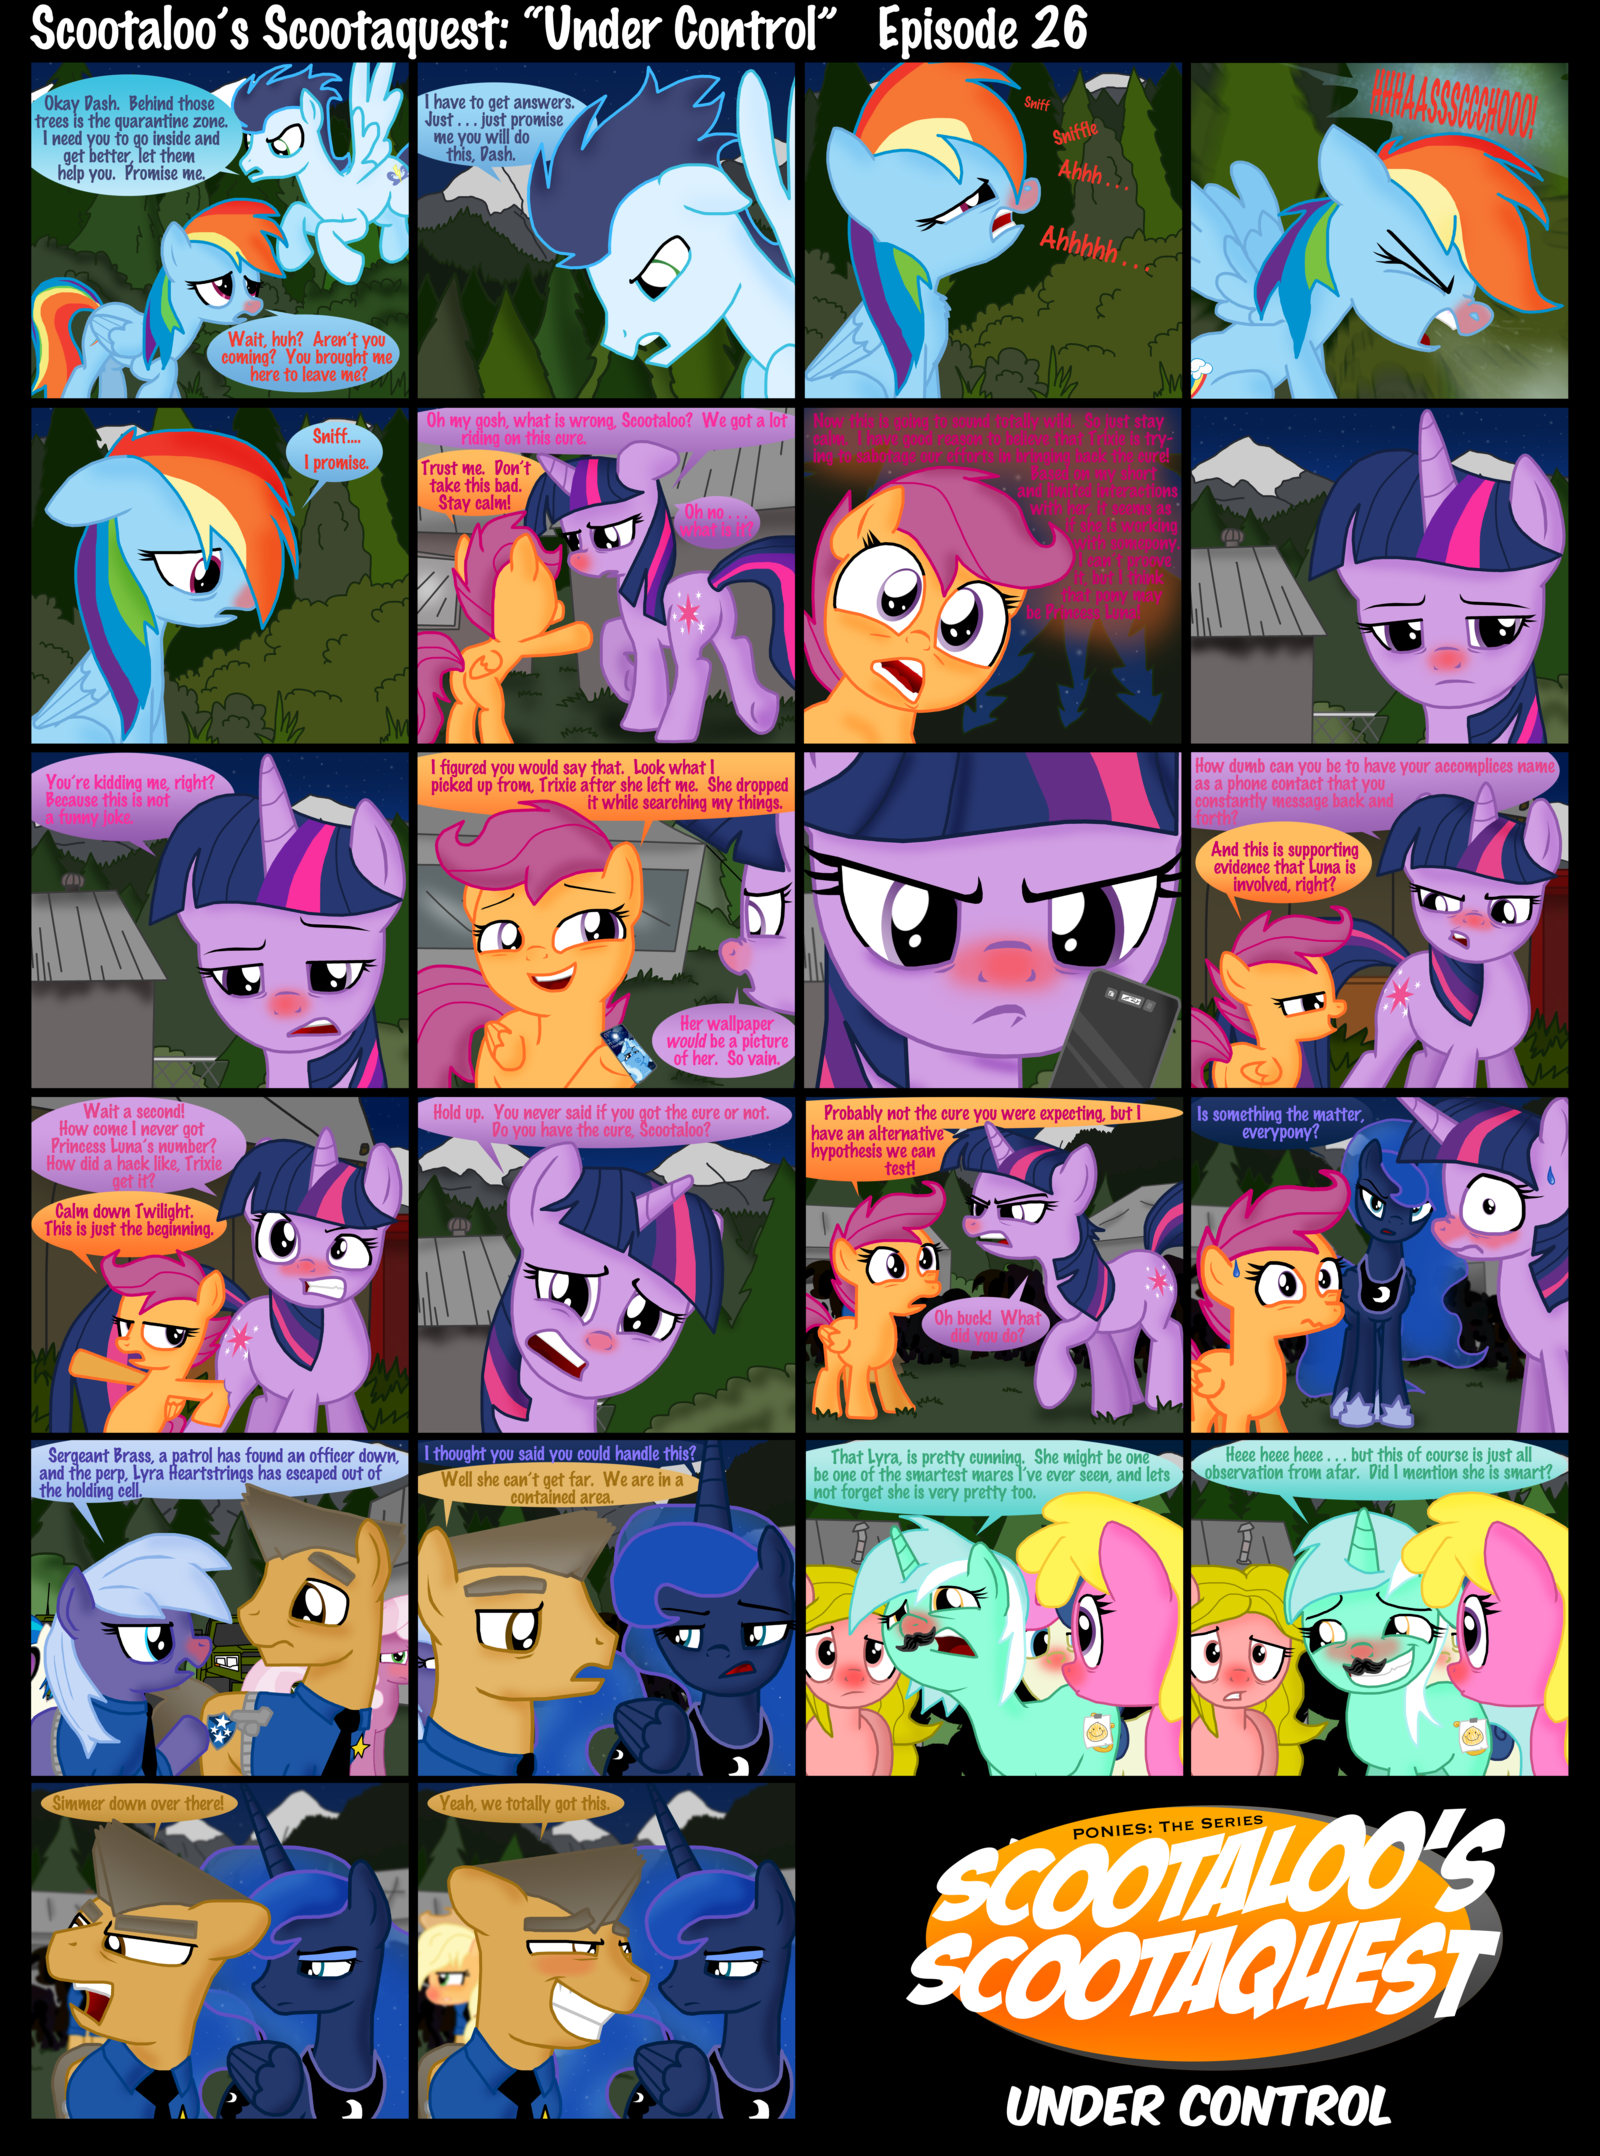 Scootaloo S Scootaquest Episode 26 My Little Pony Friendship Is Magic Know Your Meme Check out our scootaloo selection for the very best in unique or custom, handmade pieces from our stuffed animals & plushies shops. scootaloo s scootaquest episode 26 my